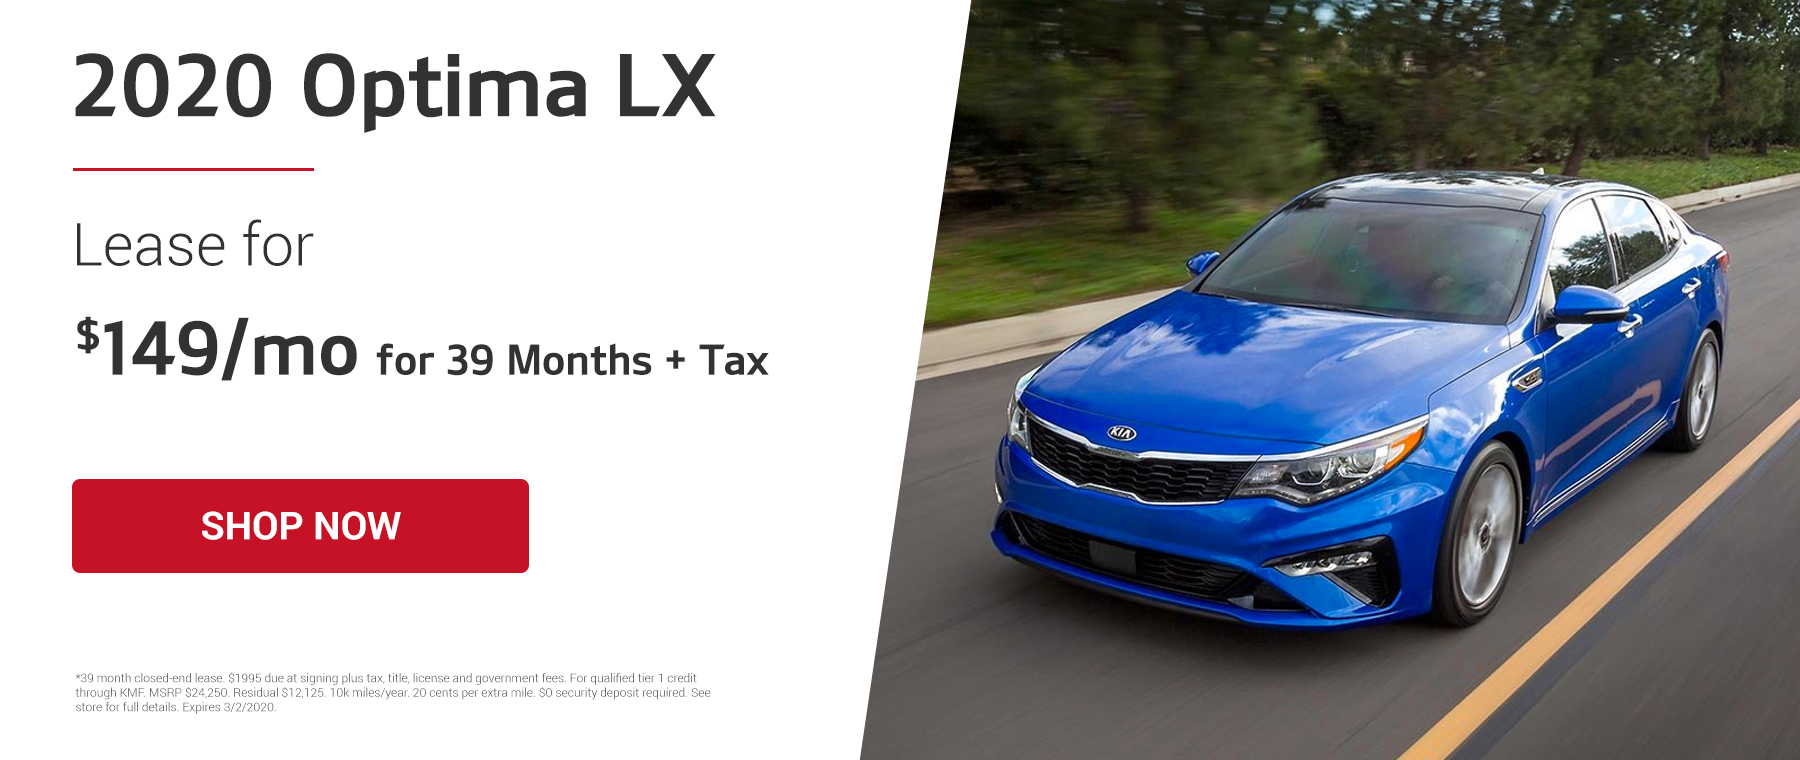 Optima Lease Offer